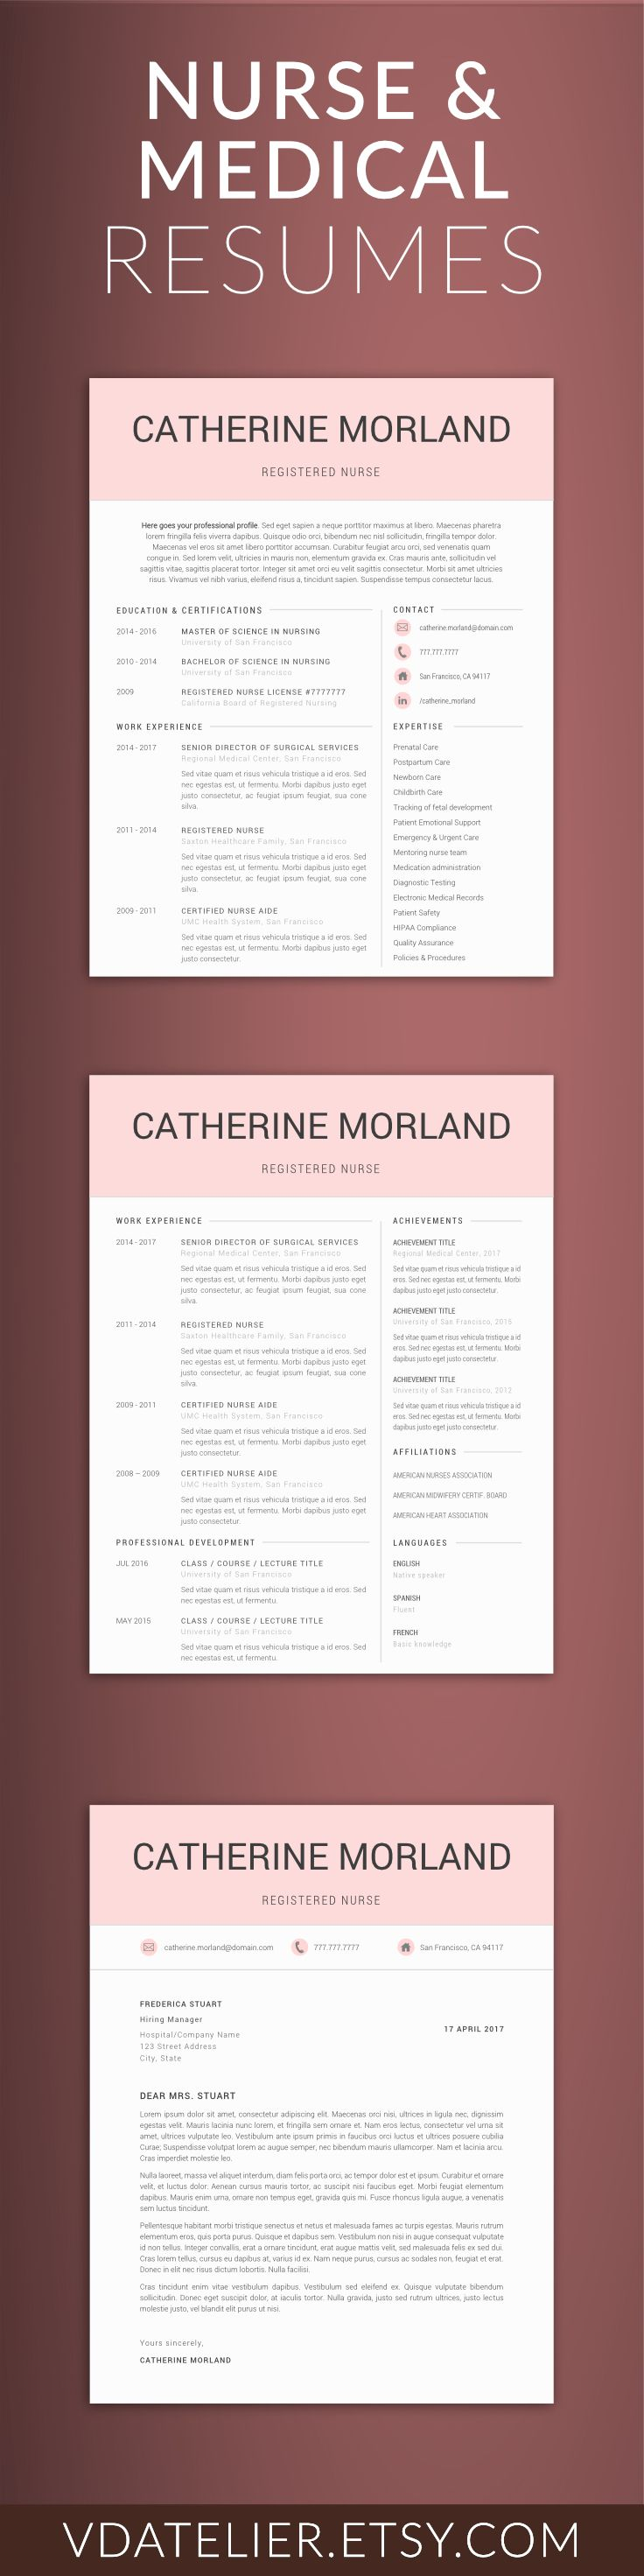 Medical Resume Word Template, Doctor/Nurse Resume Template | Professional Resume | RN Resume | US Letter & A4 | 1,2,3 Page Resume